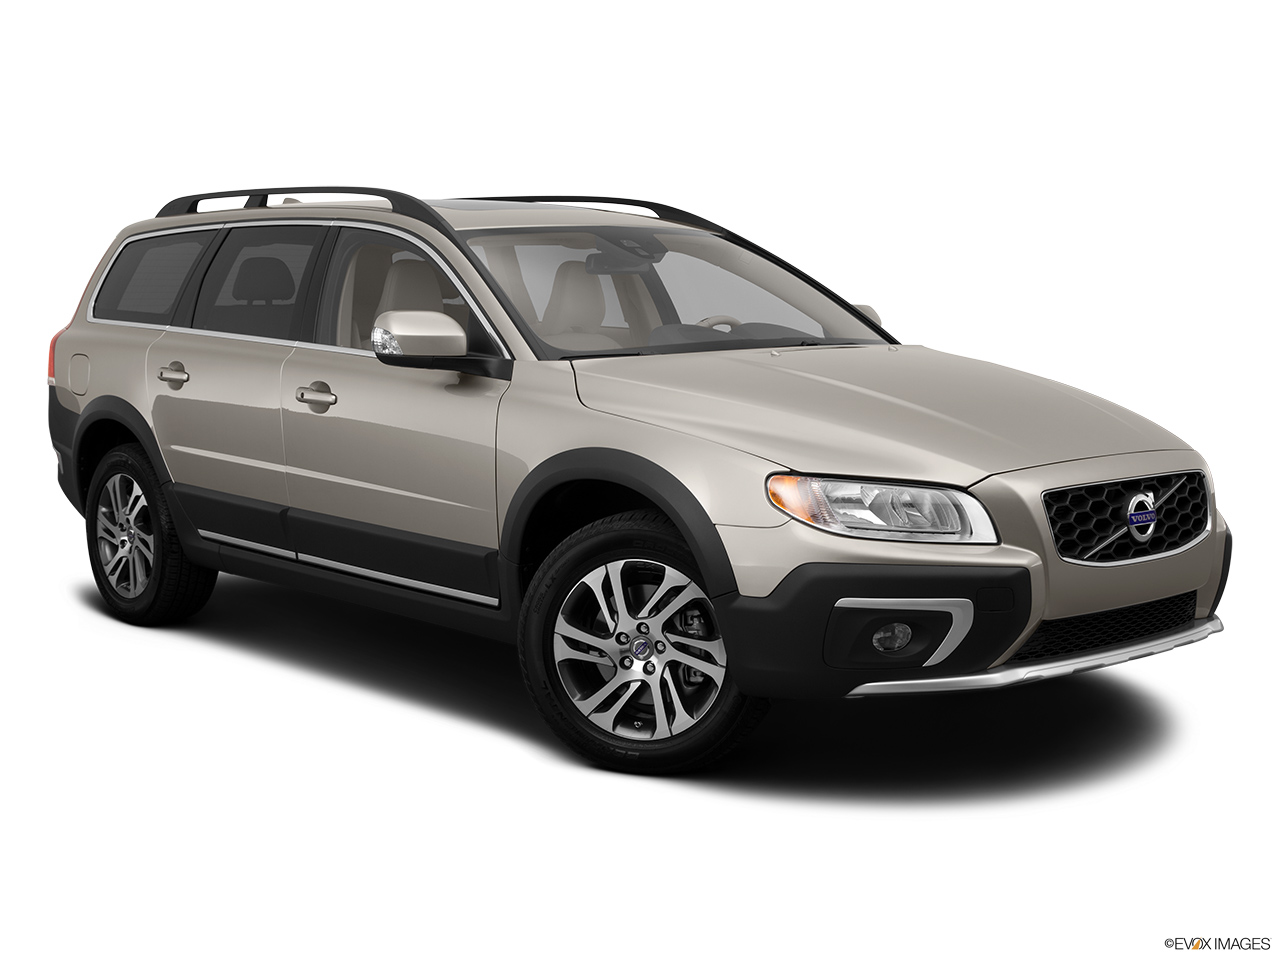 2014 Volvo XC70 3.2 AWD Premier Plus Front passenger 3/4 w/ wheels turned.